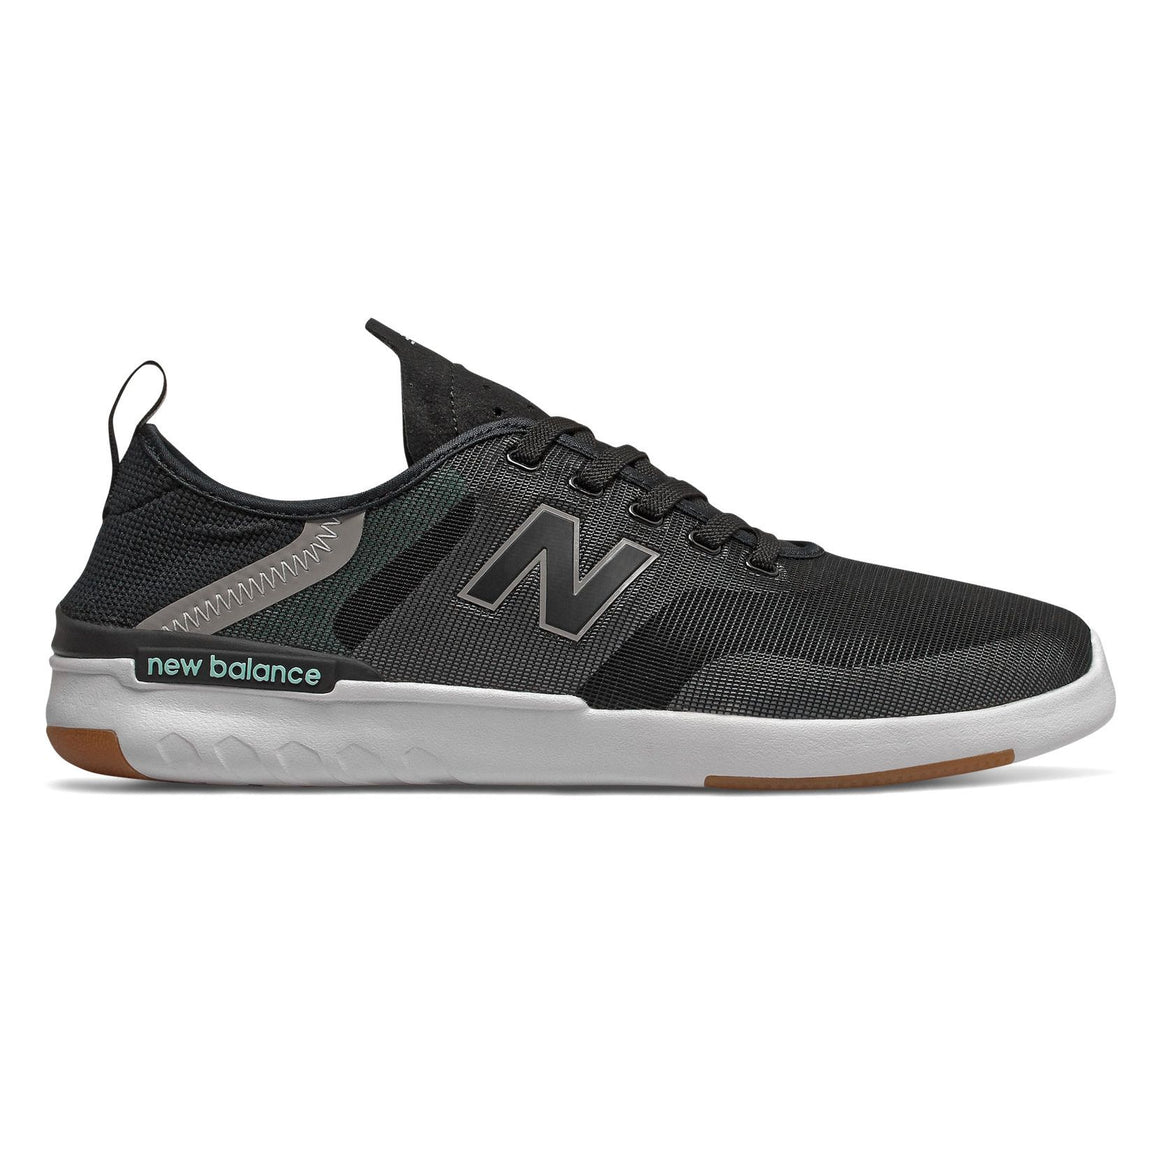 New Balance All Coast AM659 (Black/White)